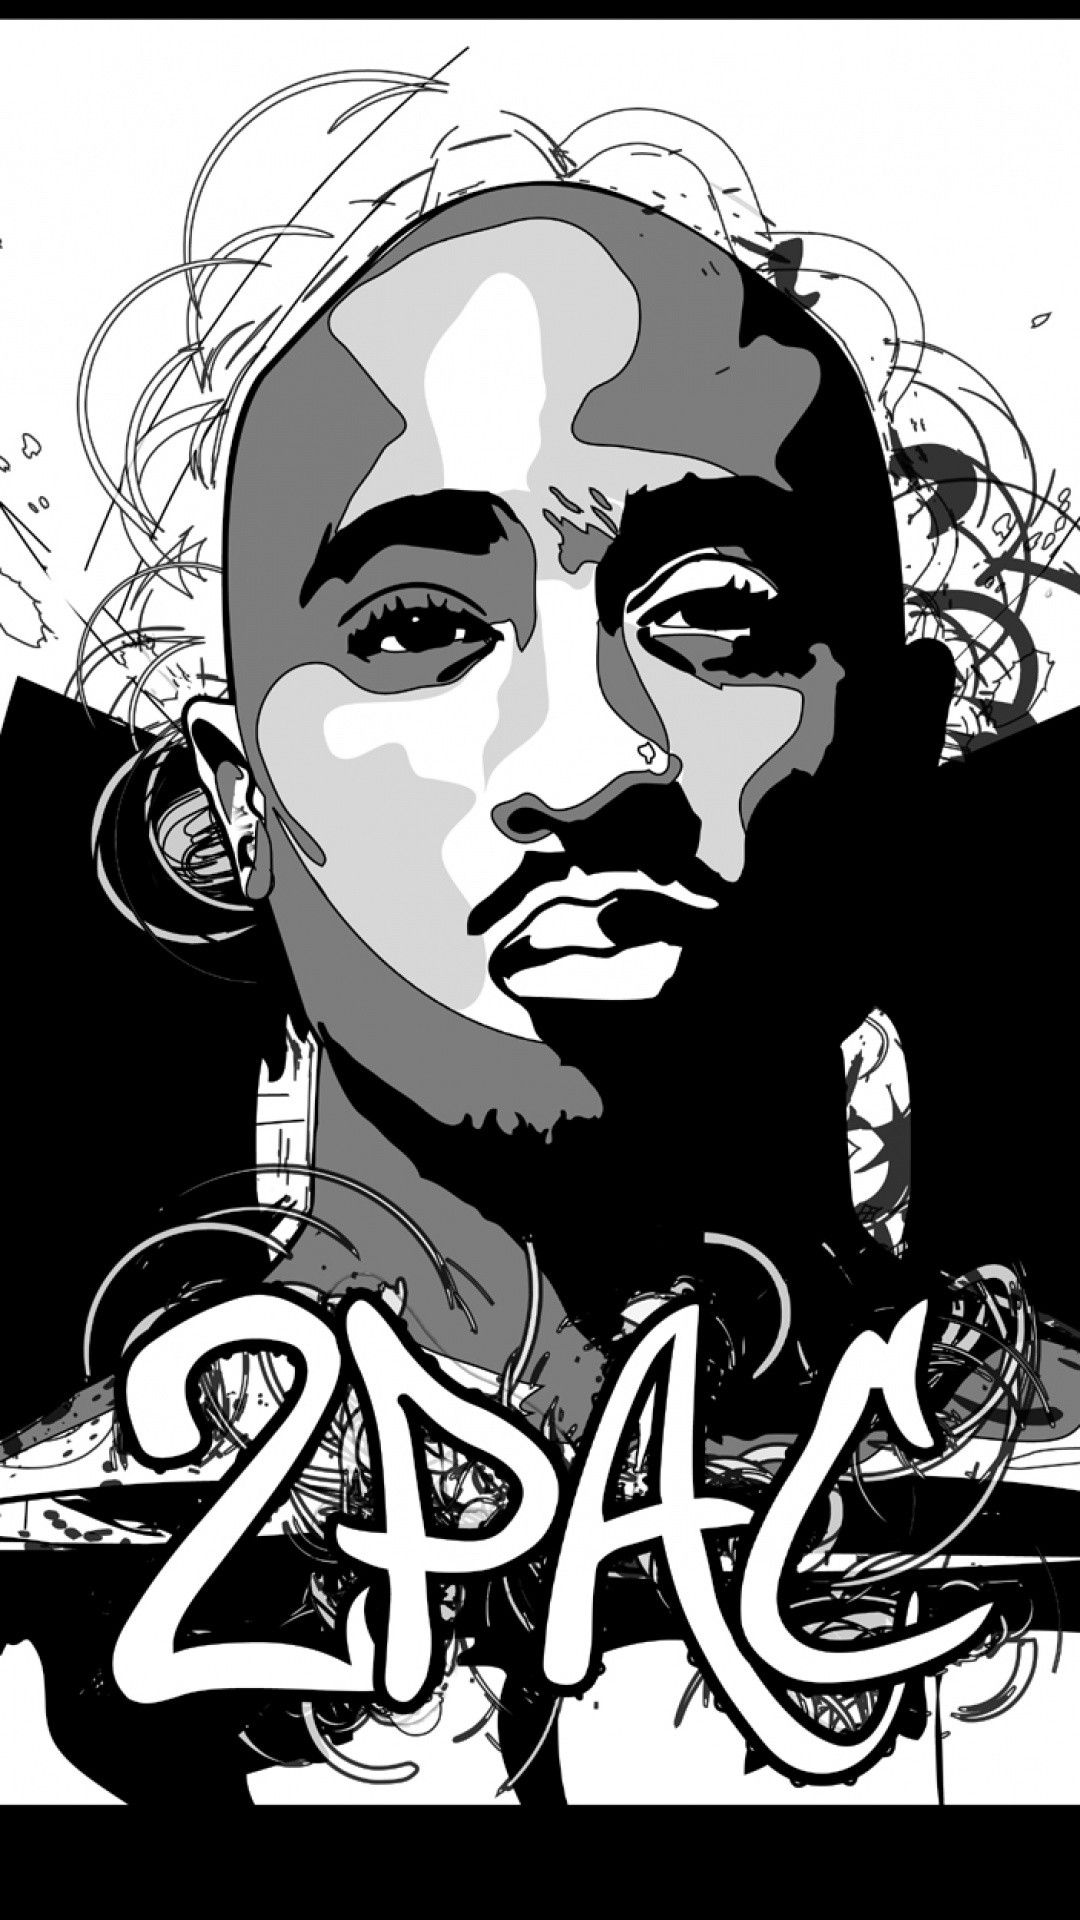 1080x1920 2Pac Wallpaper for iPhone (65+ images)